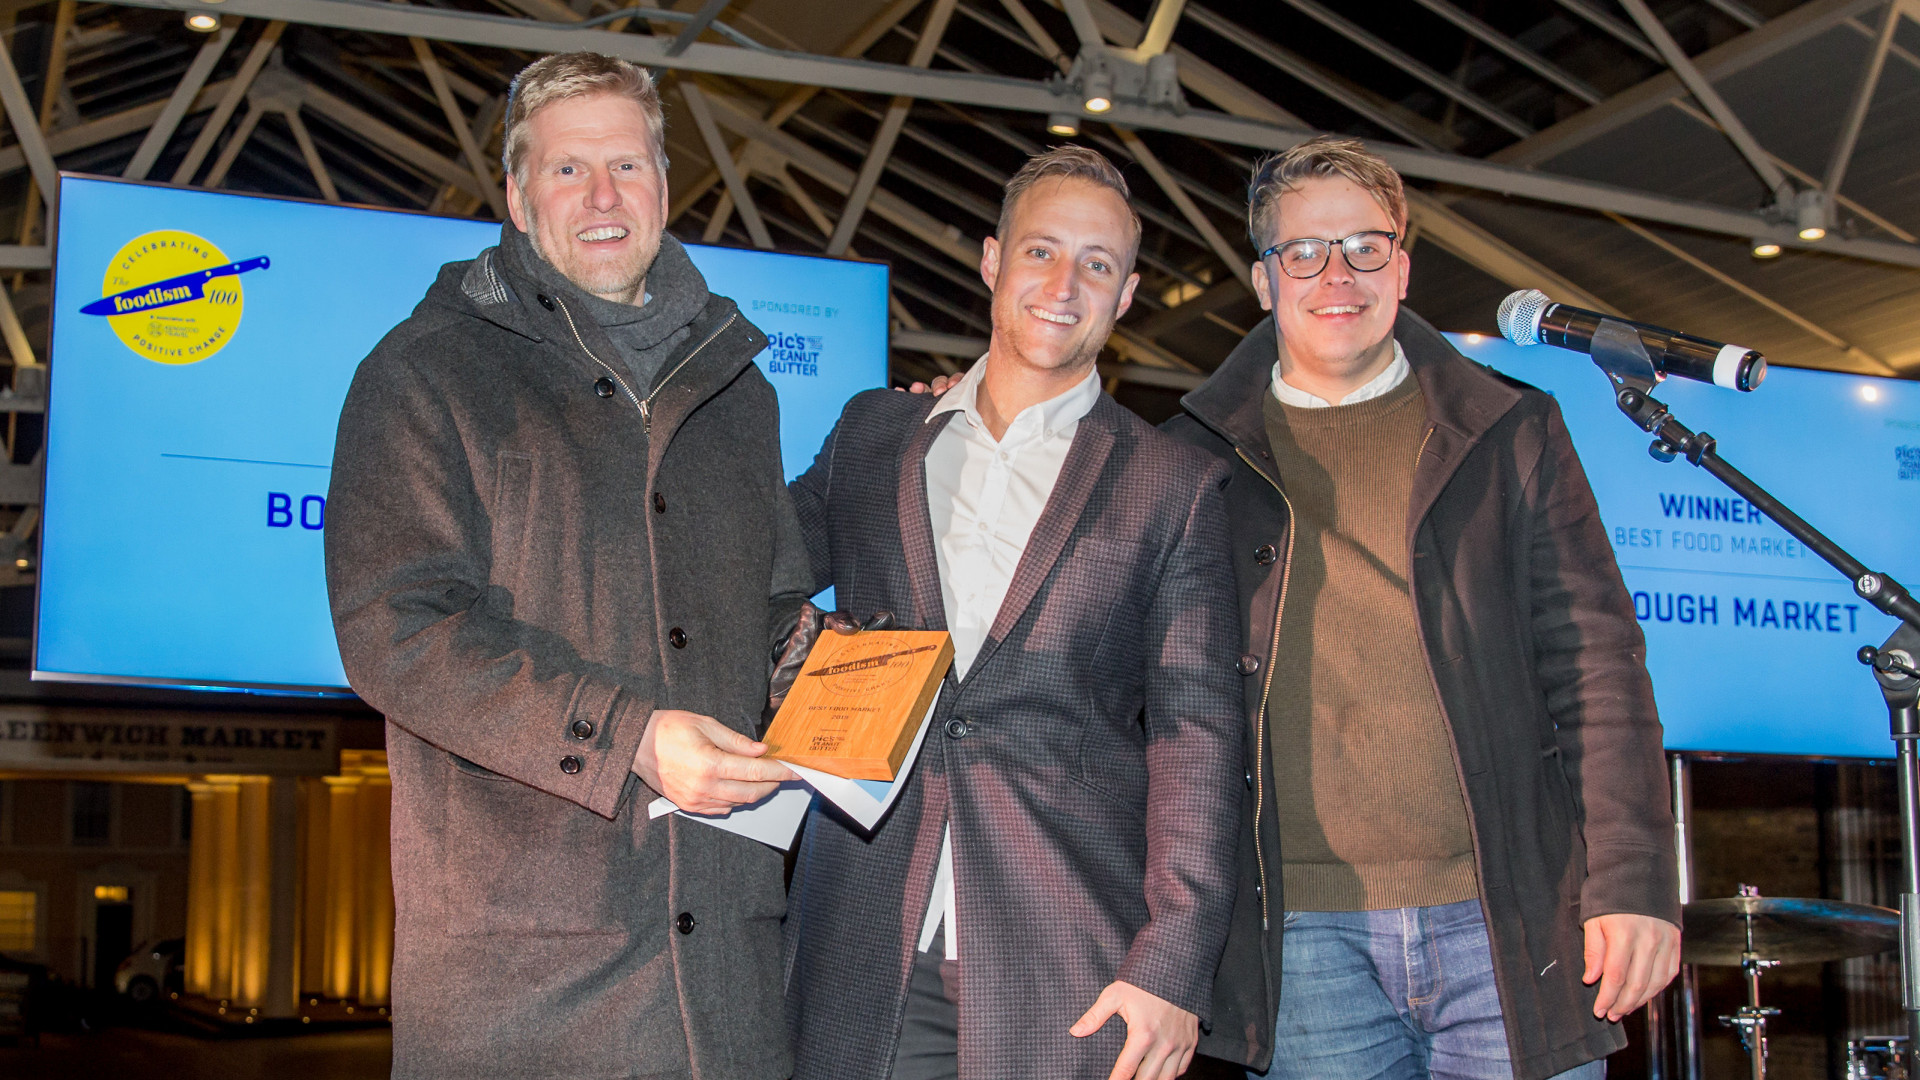 The Foodism 100 awards night 2019: Borough Market wins Best Food Market